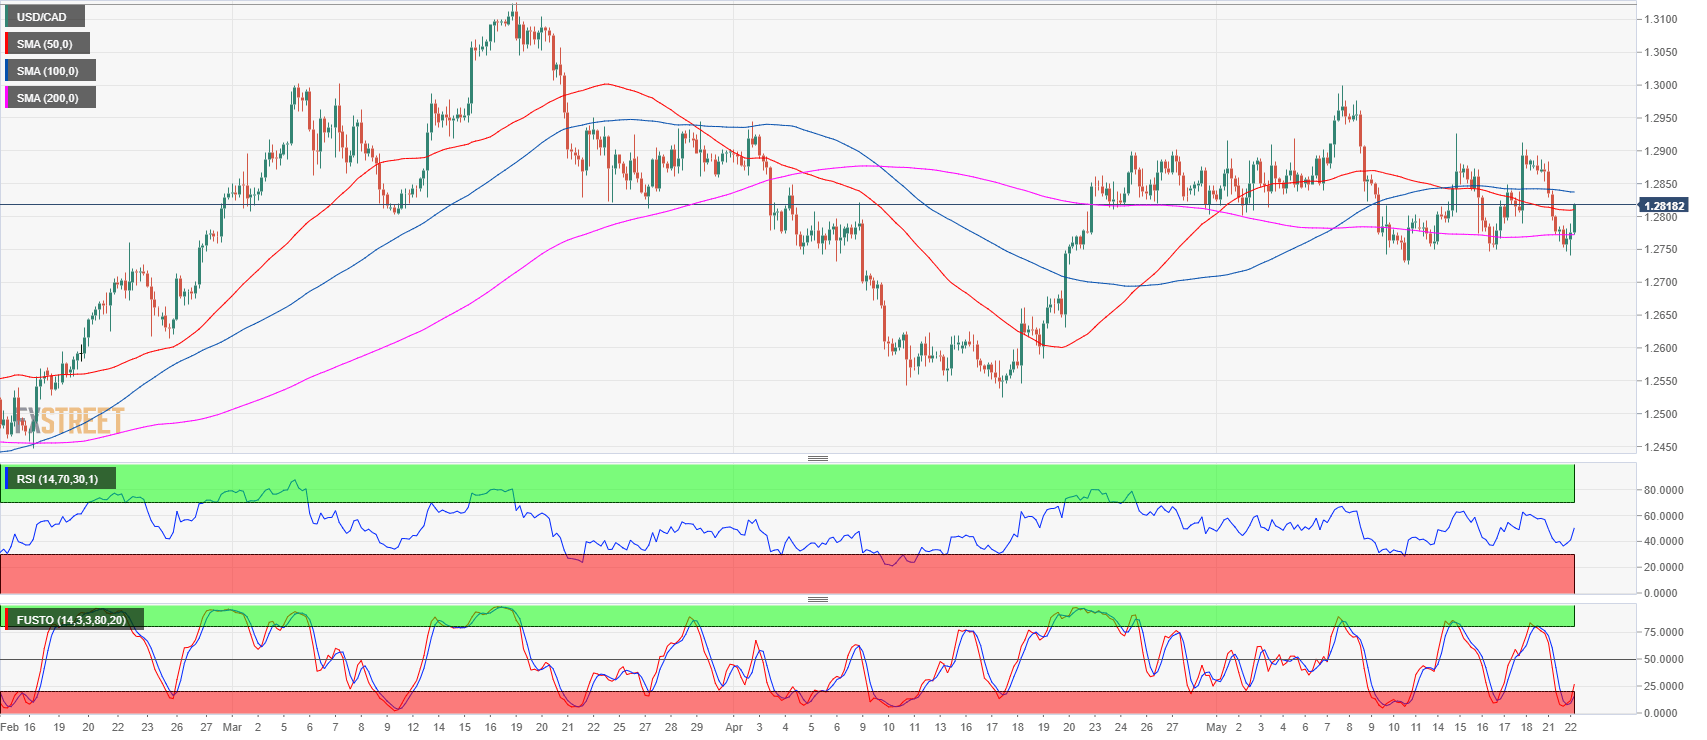 USD/CAD reverses daily losses, reclaims the 1.2800 handle amid correction in crude